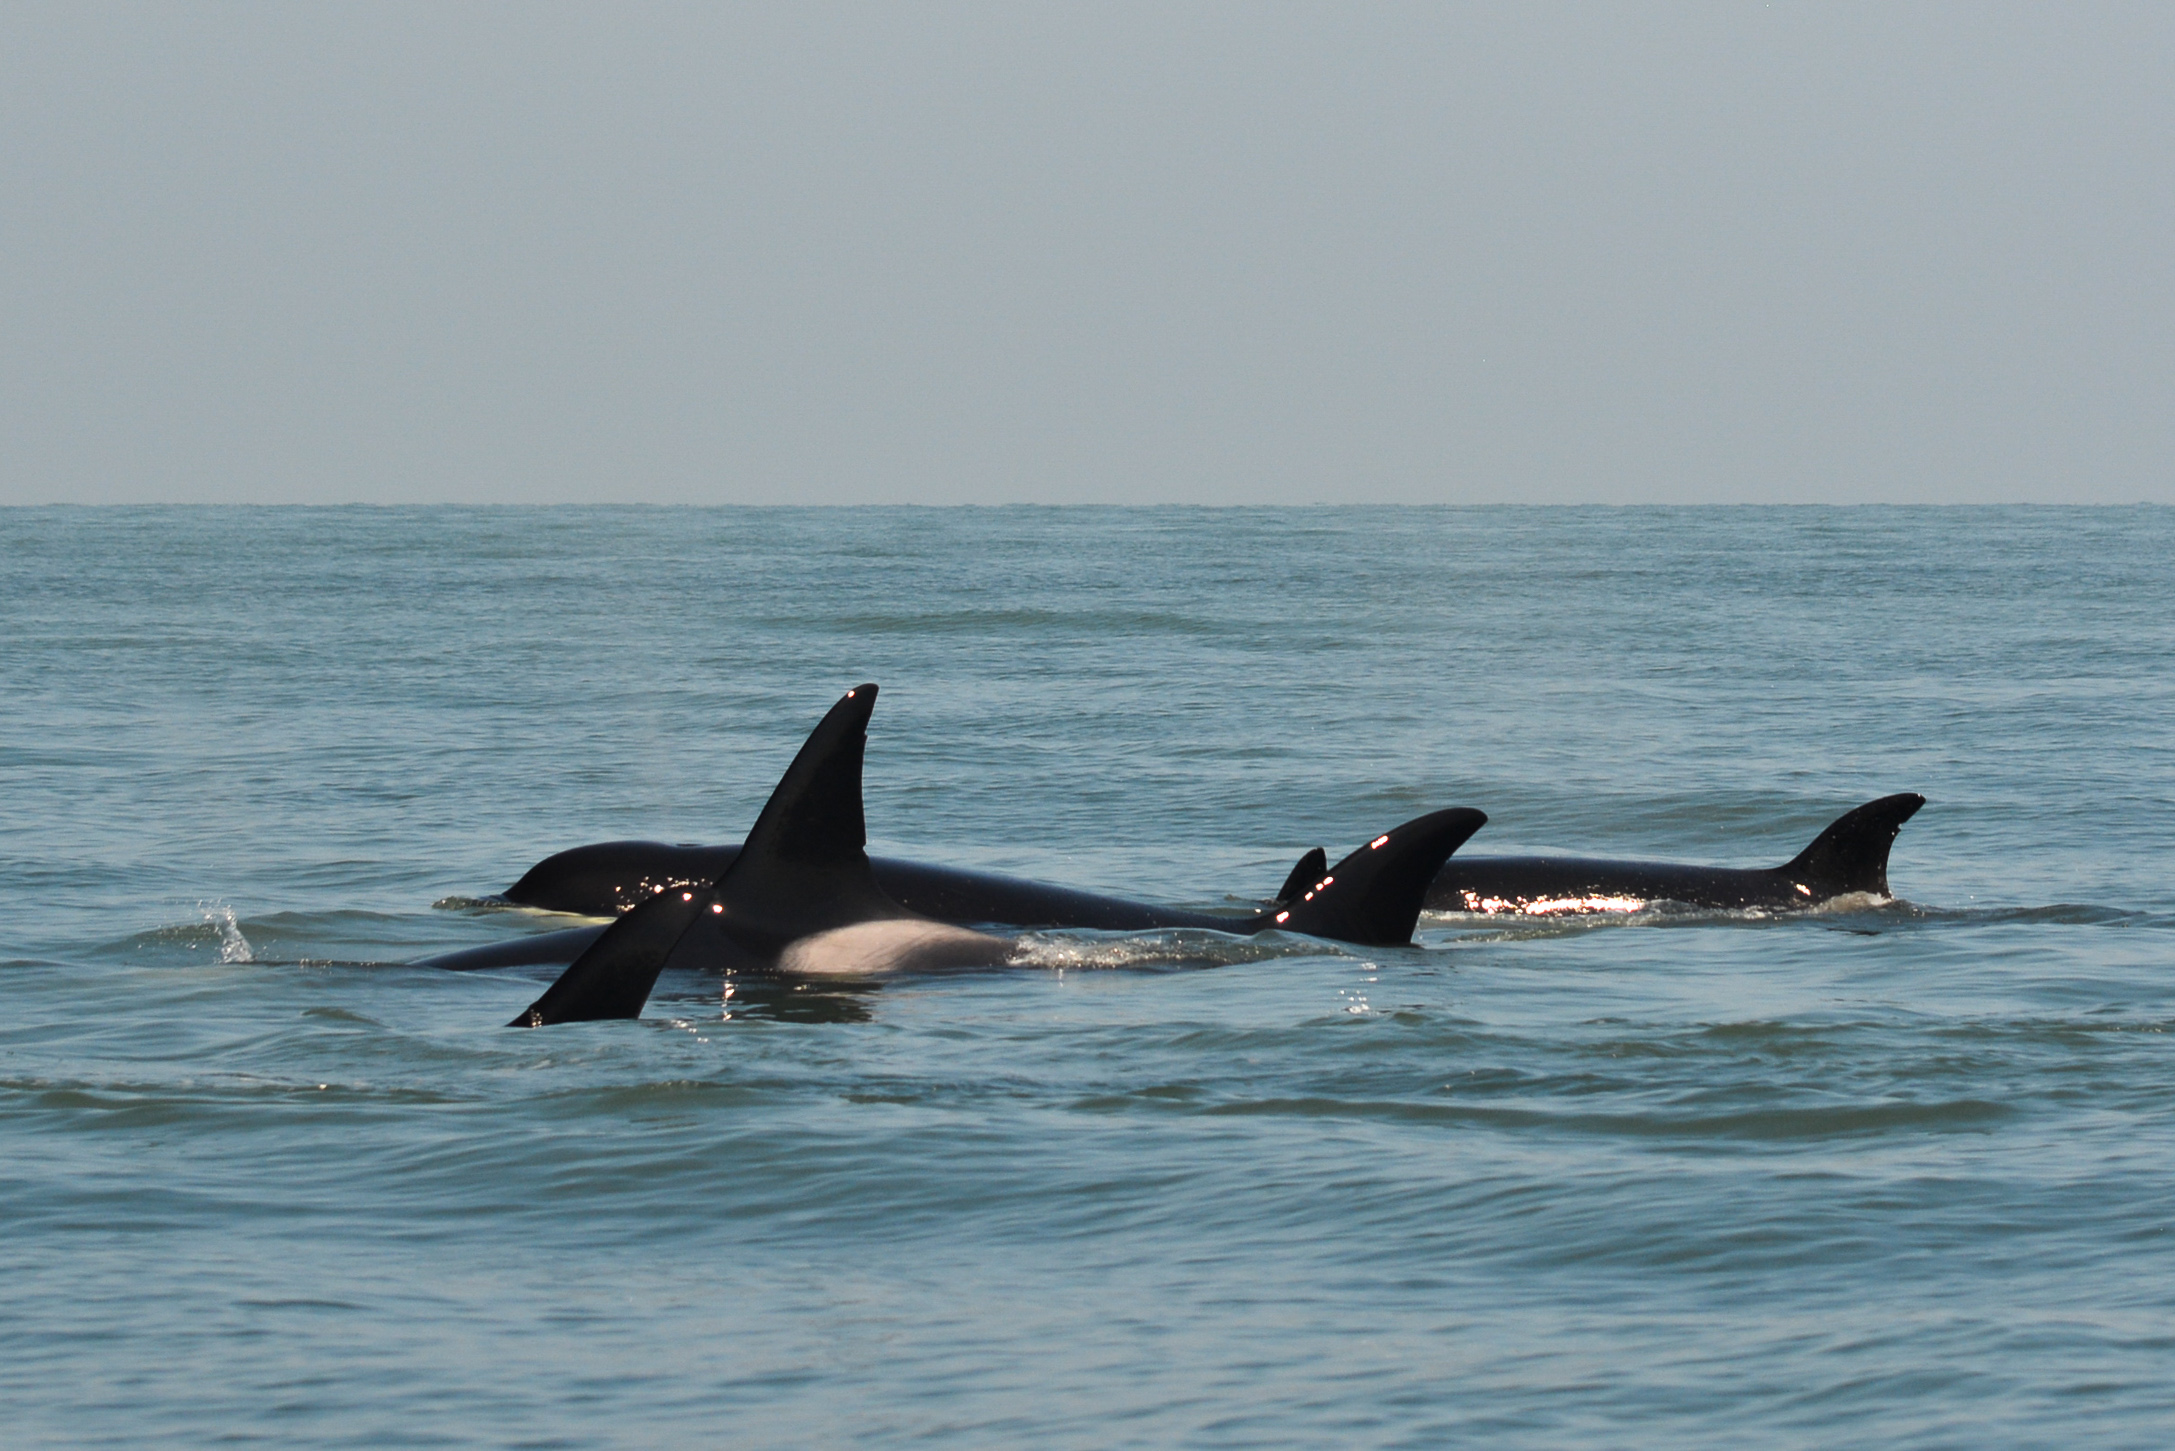 Can you spot all 5 orcas in this shot? Photo by Val Watson - 10:30 tour.